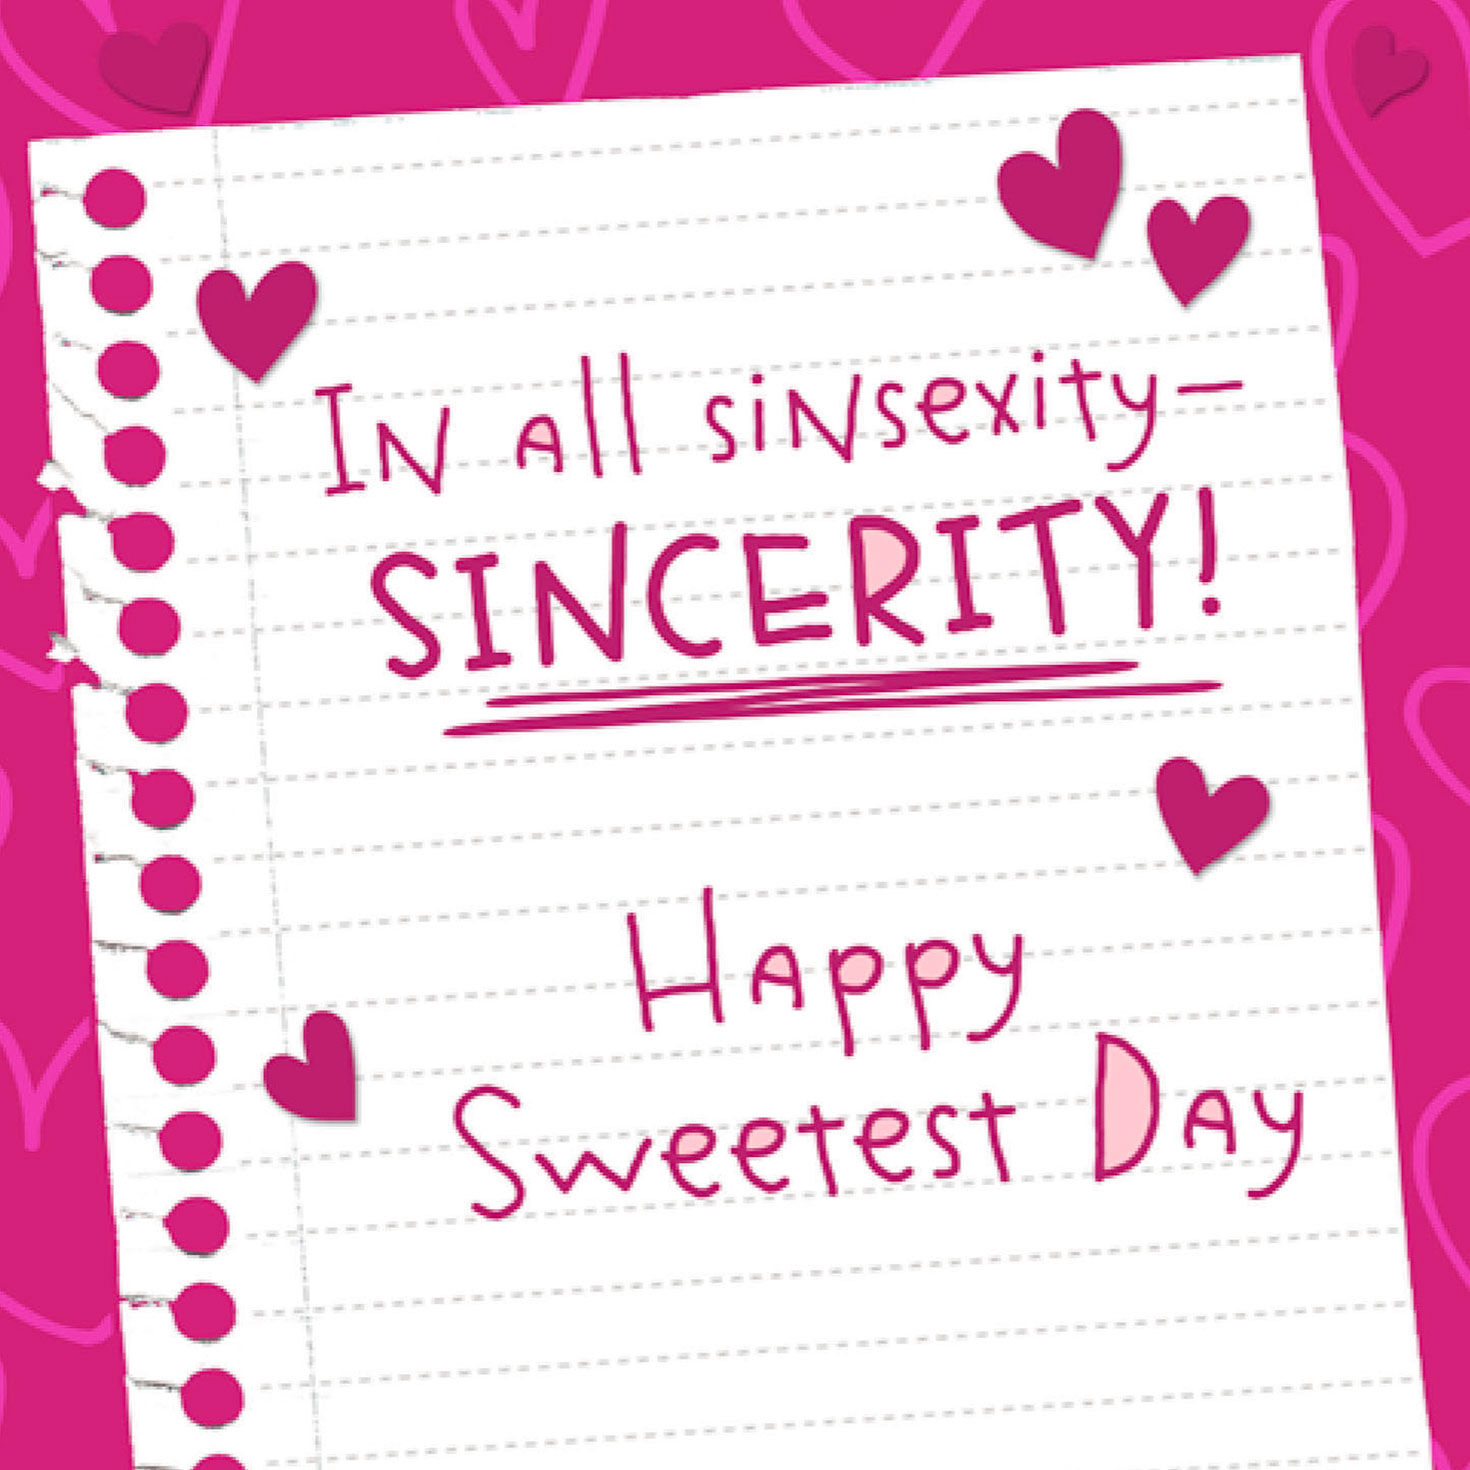 photograph about Sweetest Day Cards Printable titled Sweetest Working day Playing cards Hallmark